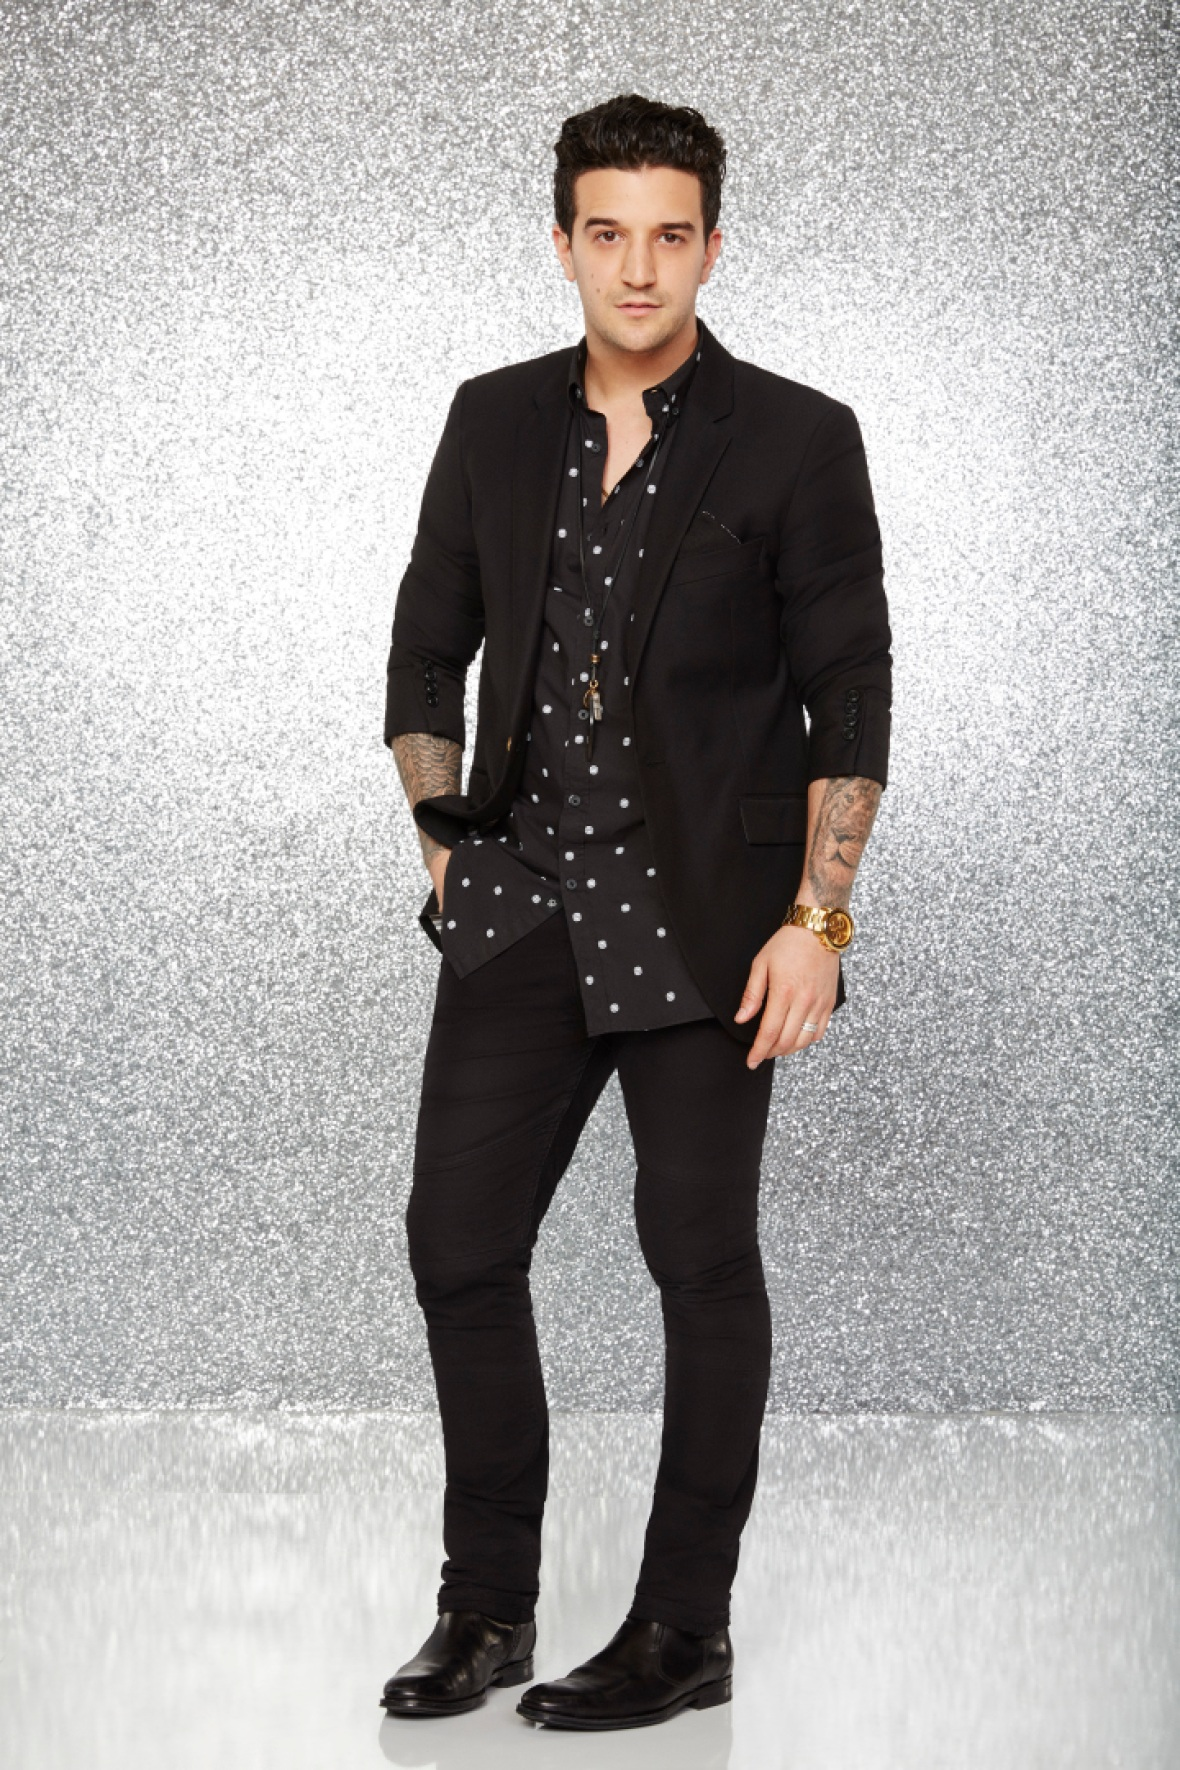 mark ballas getty images